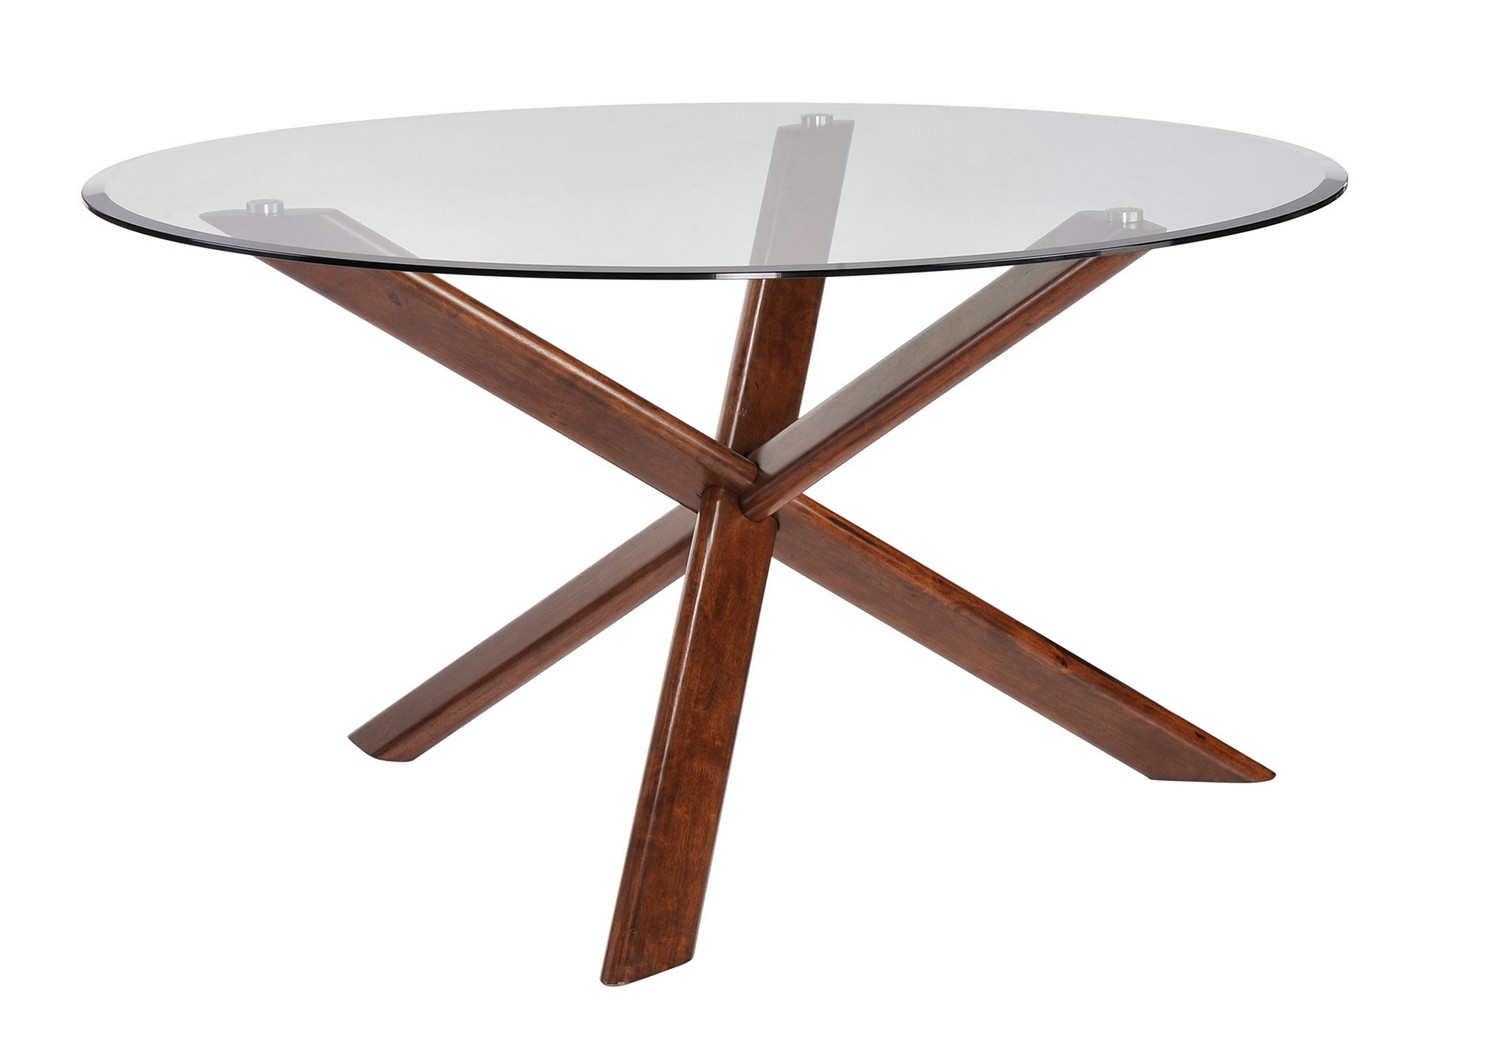 36 Inch Round Dining Table With Leaf Images